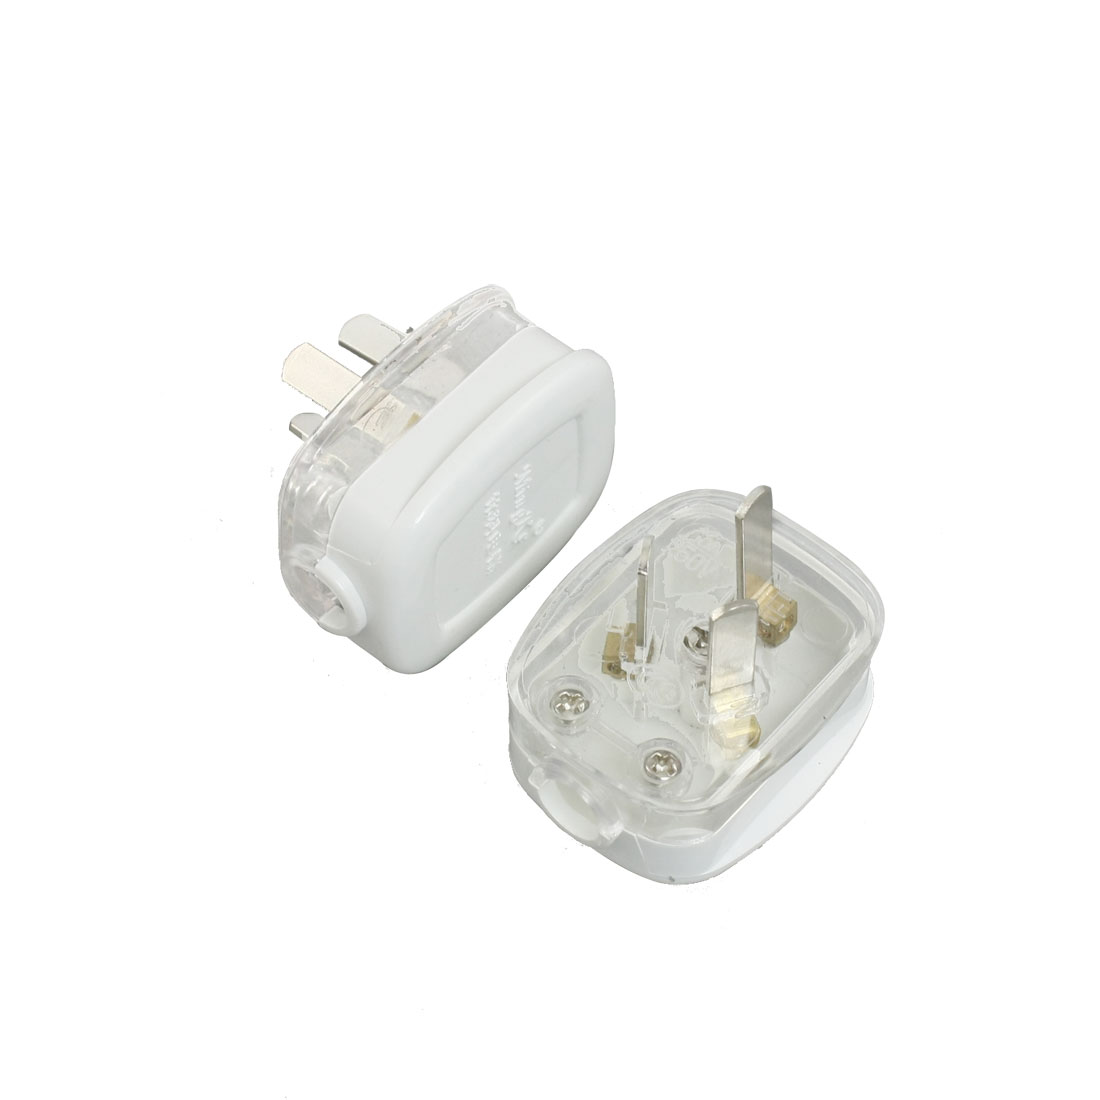 4 Pcs Power Adapter AU Plug Replacement Off White Clear AC 250V 10A